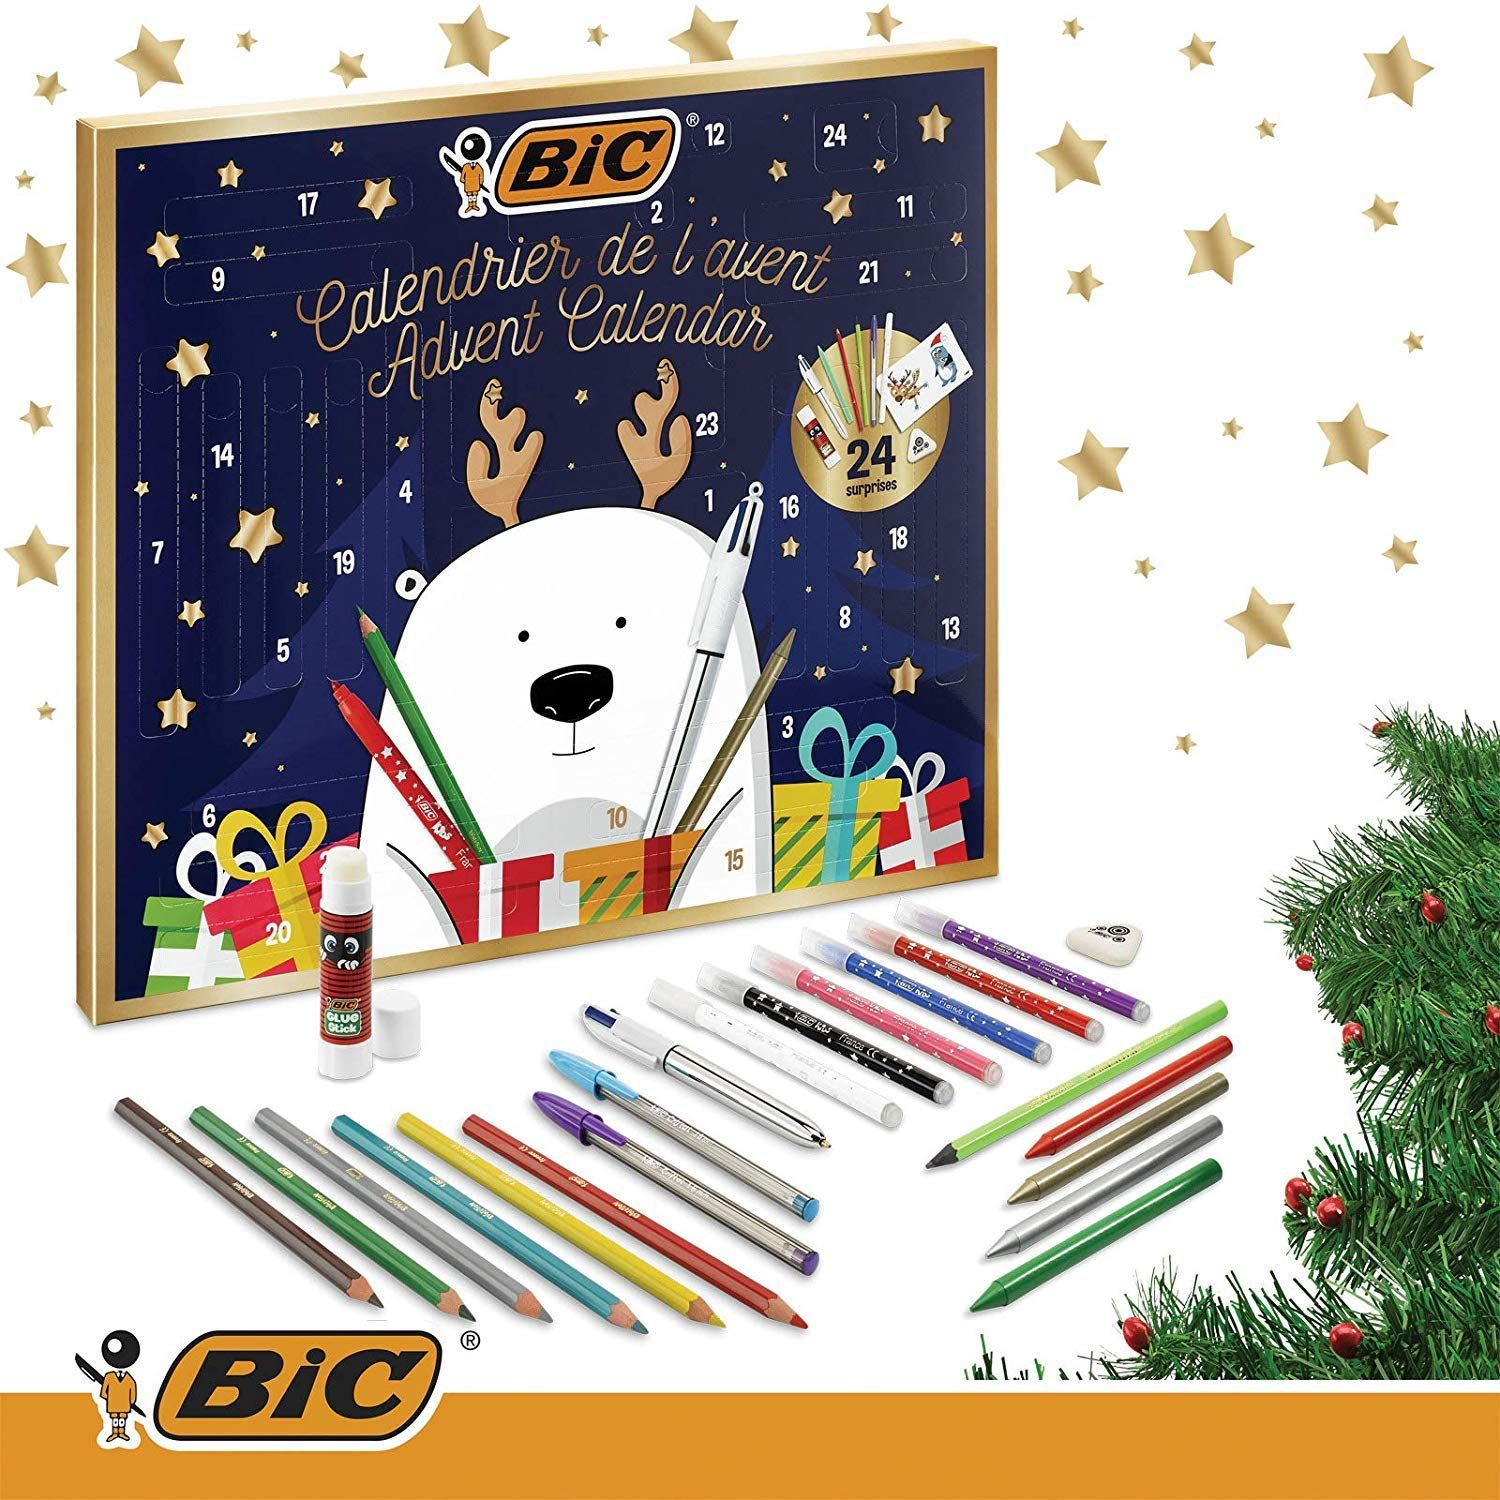 BIC Advent Calendar This is the perfect gift for someone